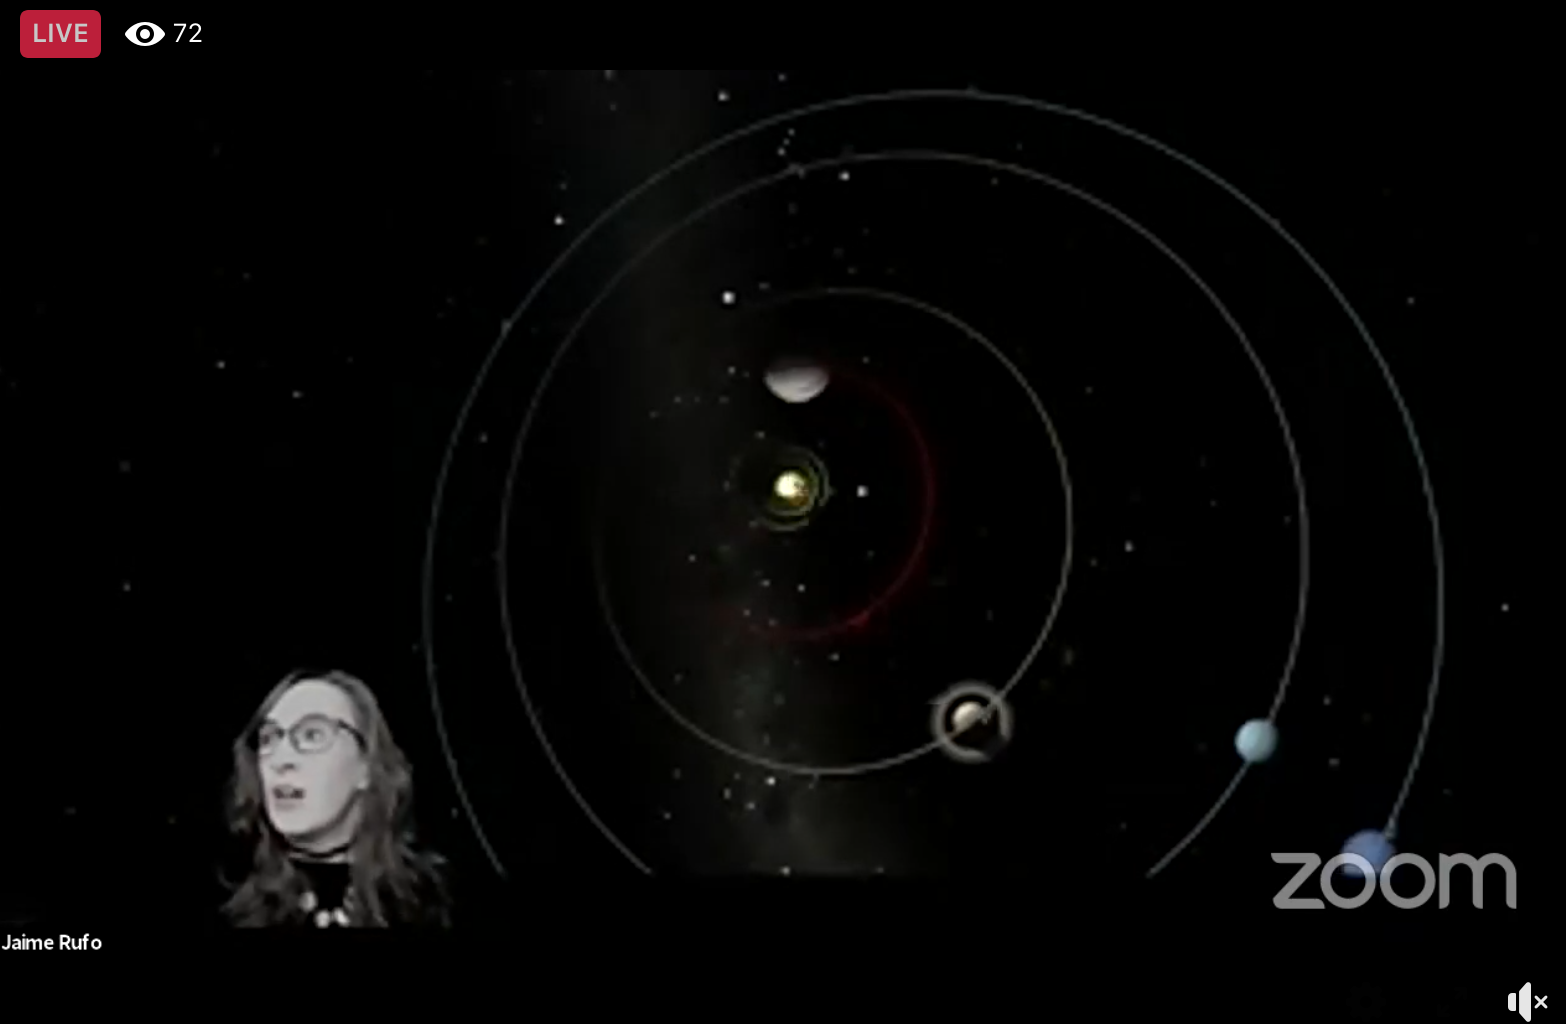 Zoom screen shot of astronomy teacher talking about planets